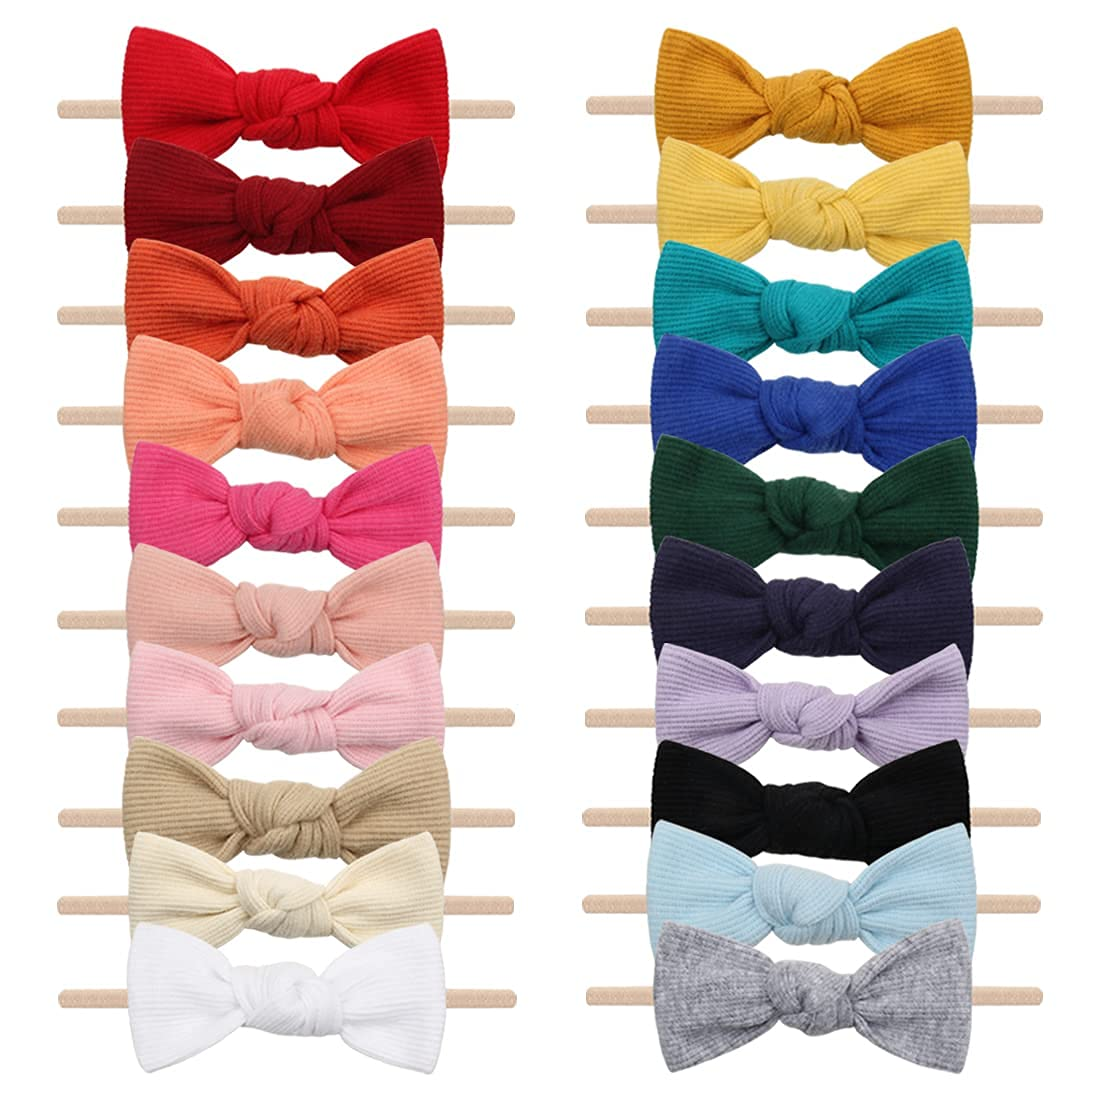 Lanmerry Baby Nylon Headband with Tied Bow Colorful Pack of 20